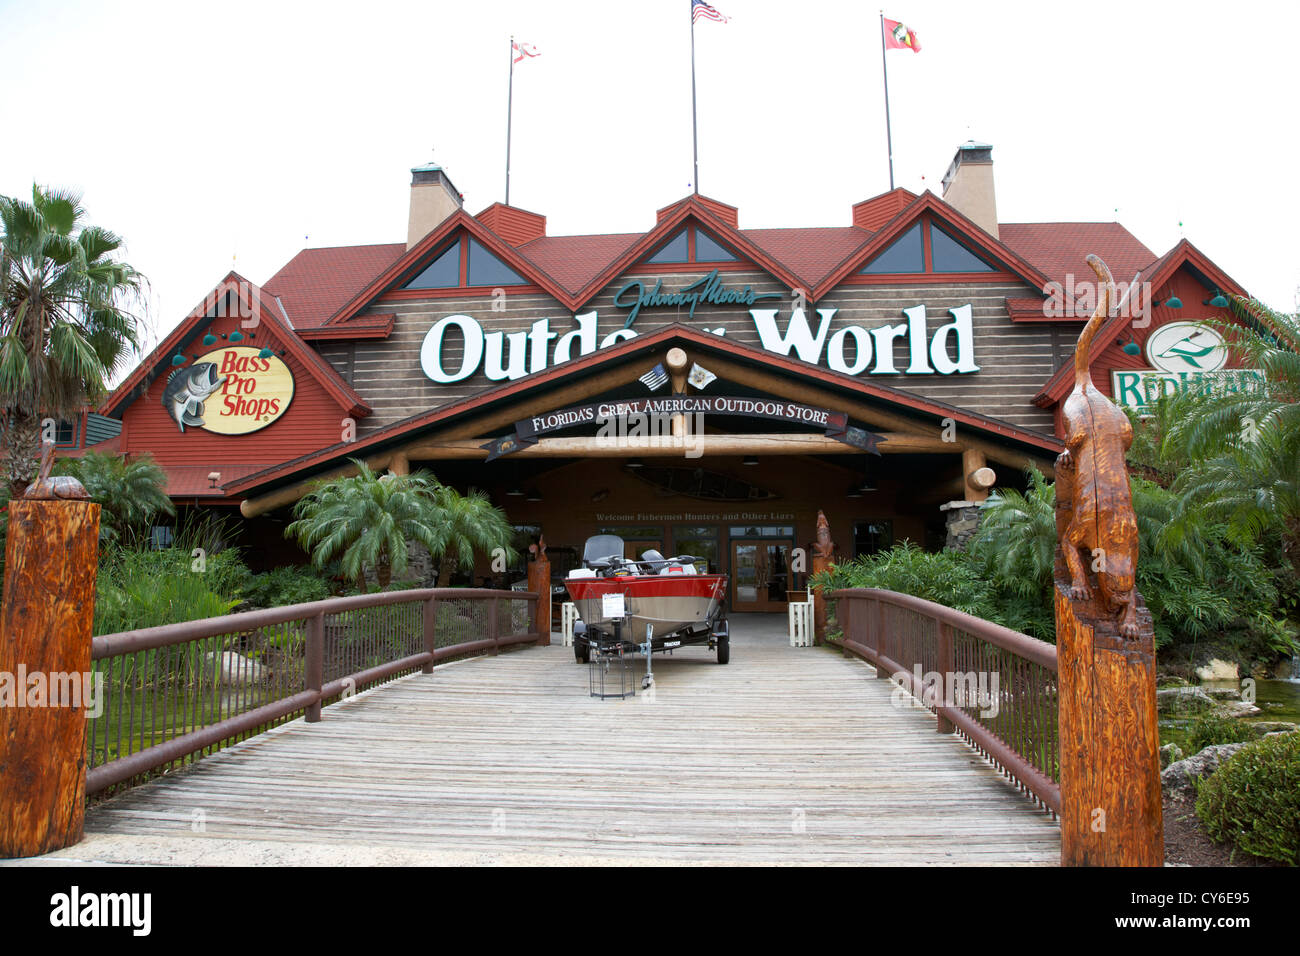 In , in response to this demand, he printed and mailed his first Bass Pro Shops catalog. Today, outdoor enthusiasts around the world look forward to opening the mail and getting their favorite Bass Pro Shops catalog, while many enjoy visiting and shopping 3aaa.ml(71).